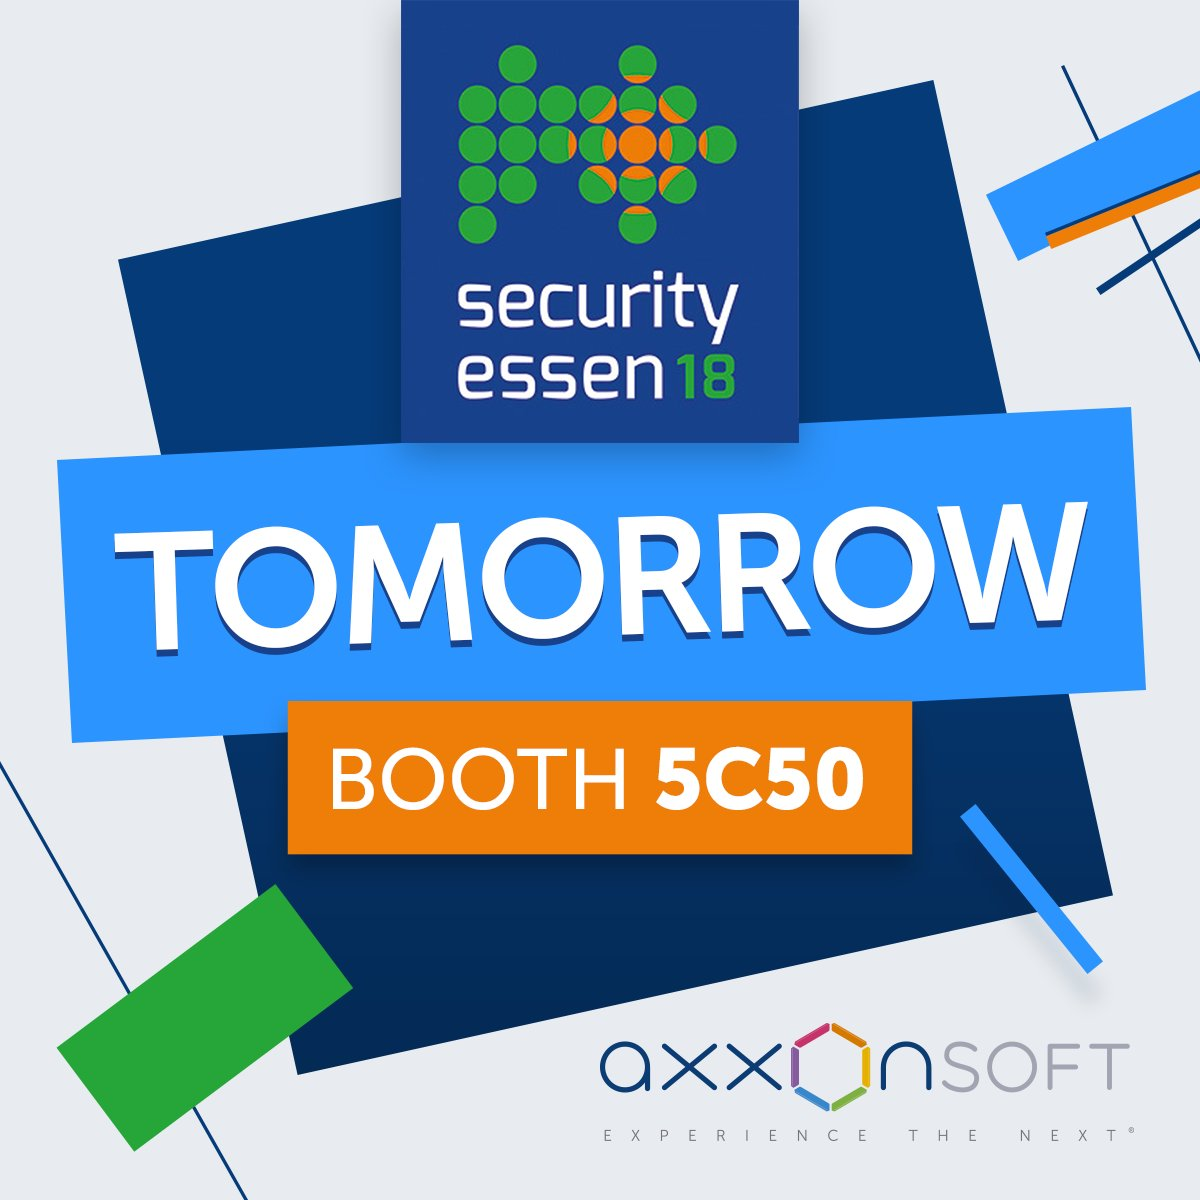 @securitysssen officially opens tomorrow! We&#39;re excited, how about you? Give us a Like if you plan to be there! #axxonsoft #securityessen #security #surveillance #vms #psim #axxonnext #intellect #axxonnet #deeplearning #artificialintelligence #cctv #onvif #gdpr #facialrecognition <br>http://pic.twitter.com/JtDjmryh0d